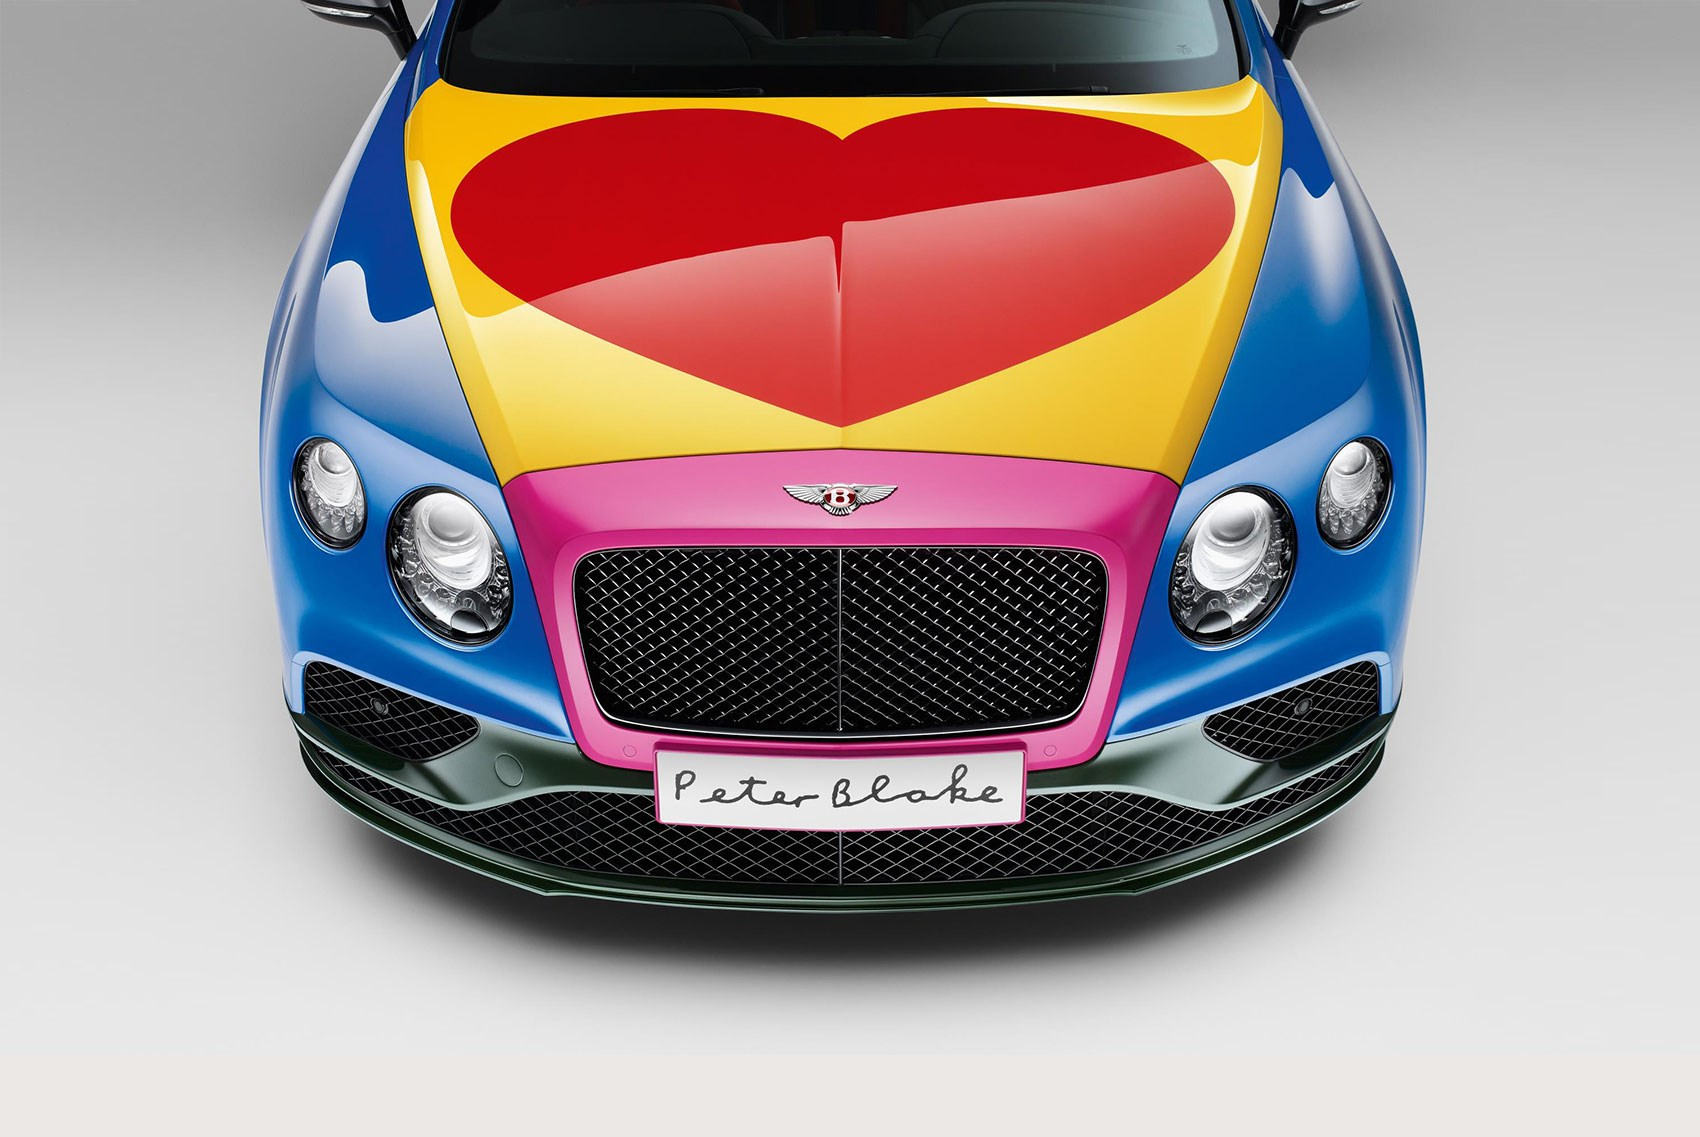 The Pop Art Bentley Peter Blake Spices Up A Conti Car